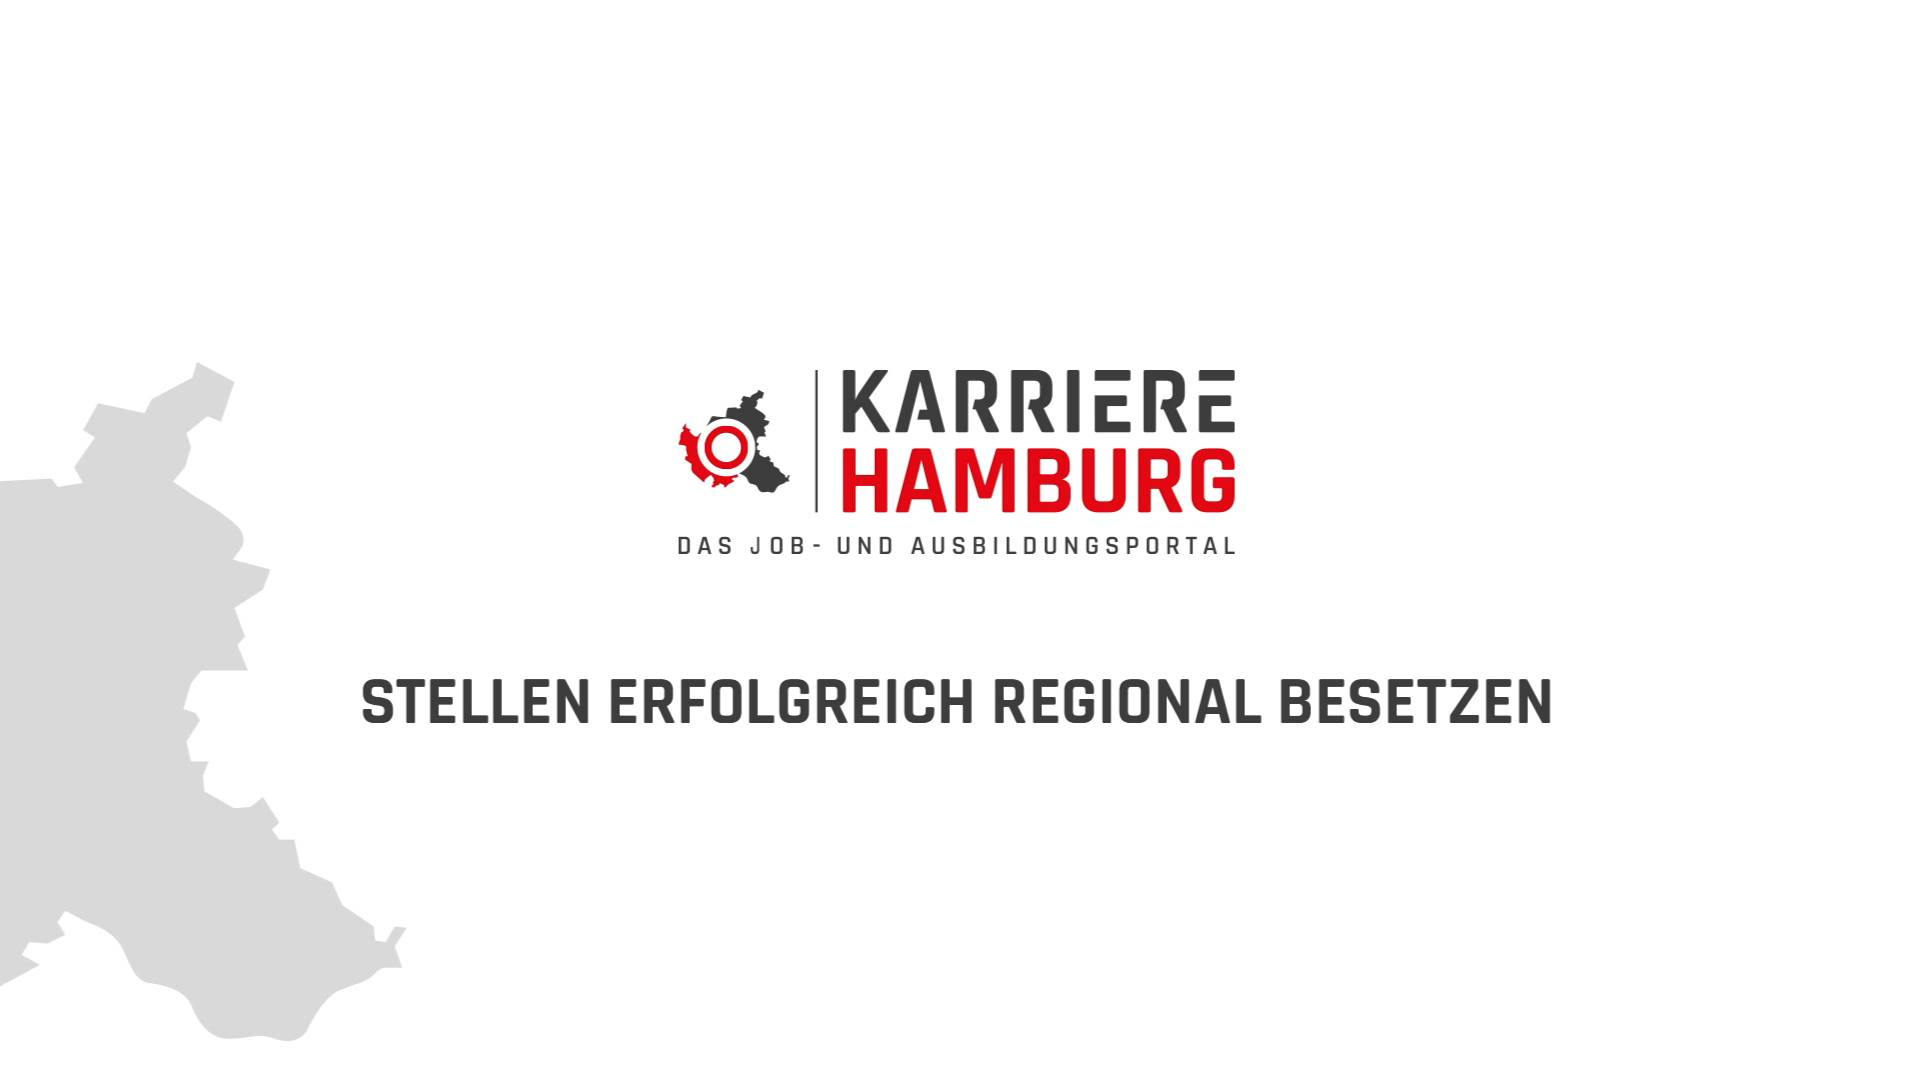 So funktioniert Karriere Hamburg